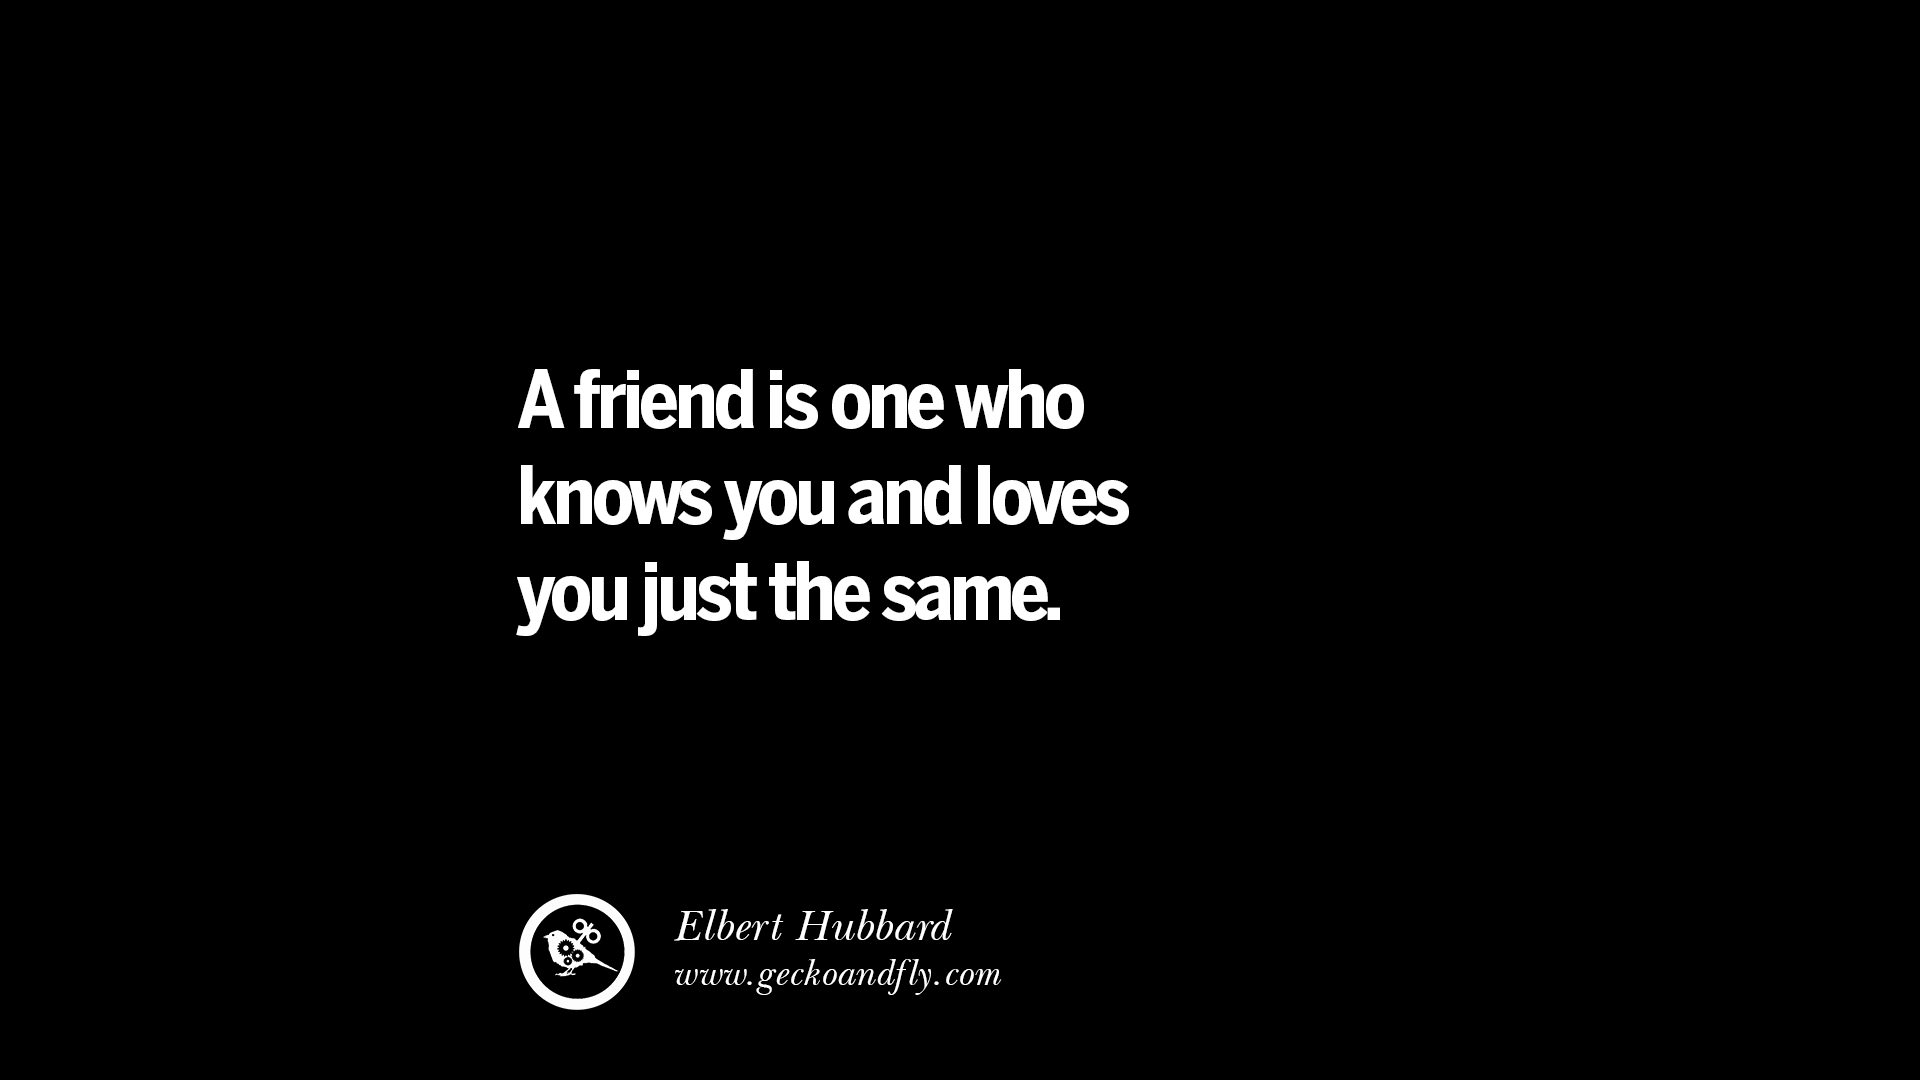 Turkish Quotes About Friendship Quotes About Love And Friendship Images Love And Friendship